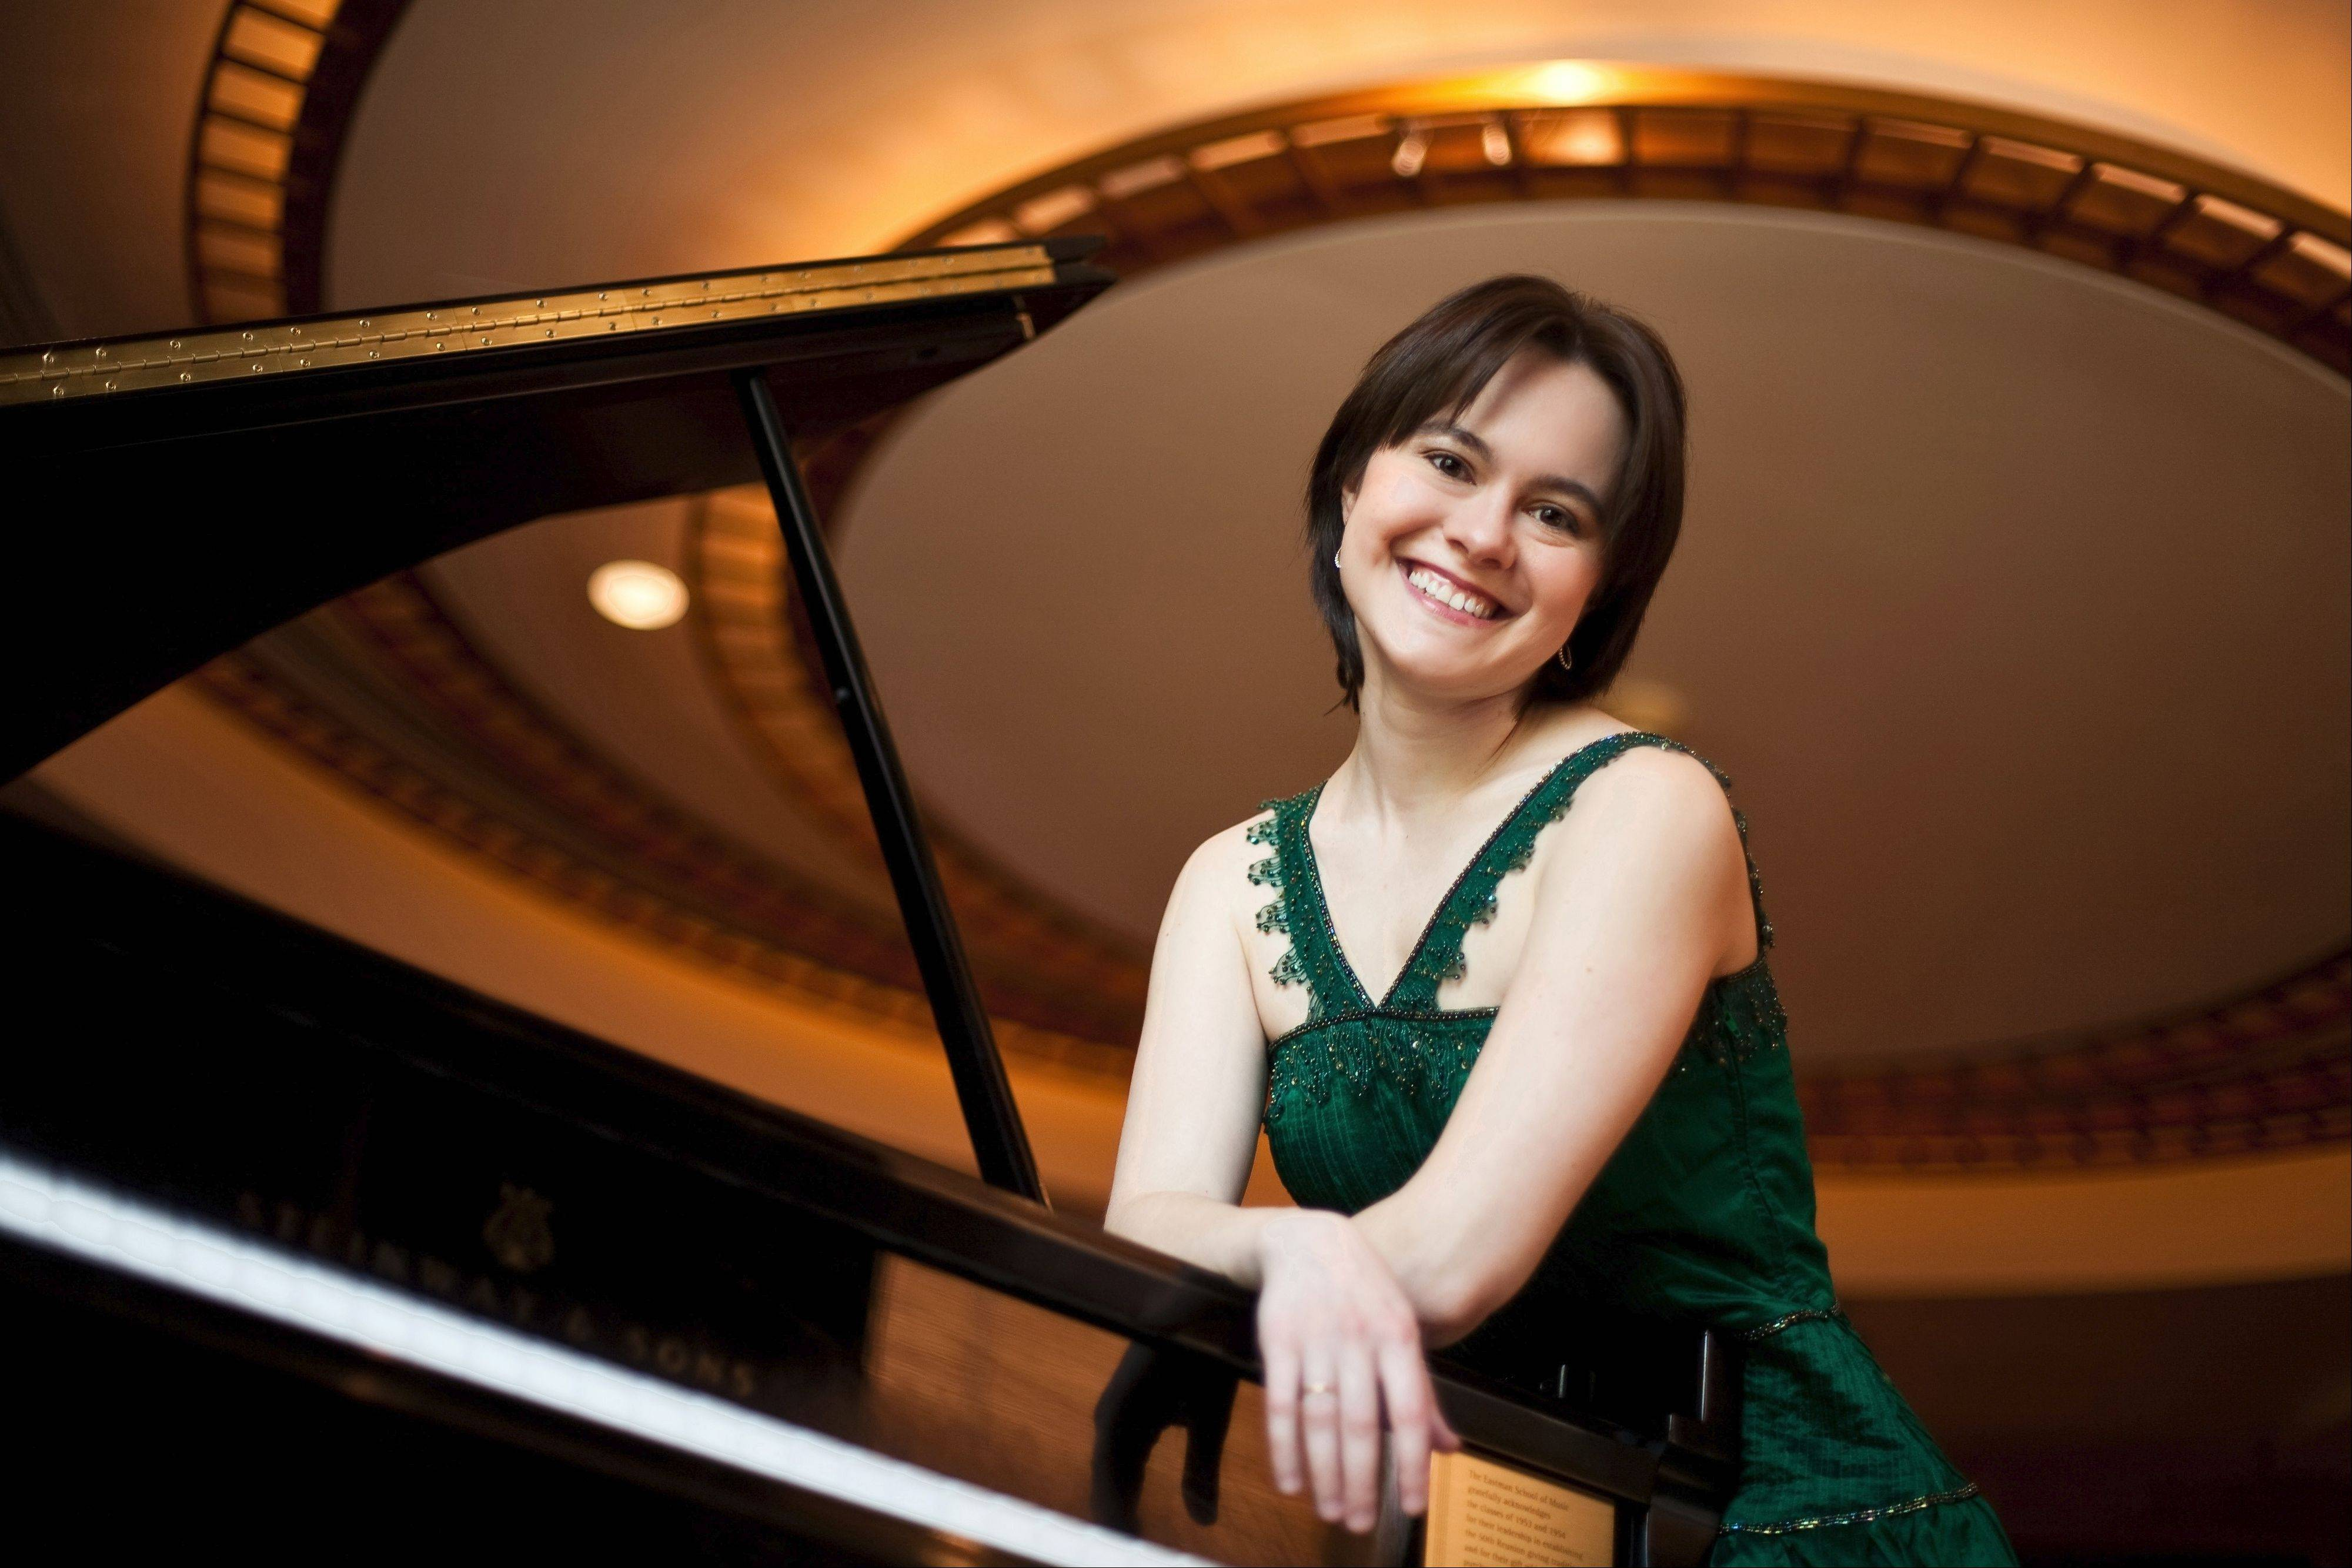 Pianist Daria Rabotkina performs with the DuPage Symphony Orchestra in Naperville on Saturday, Oct. 12.